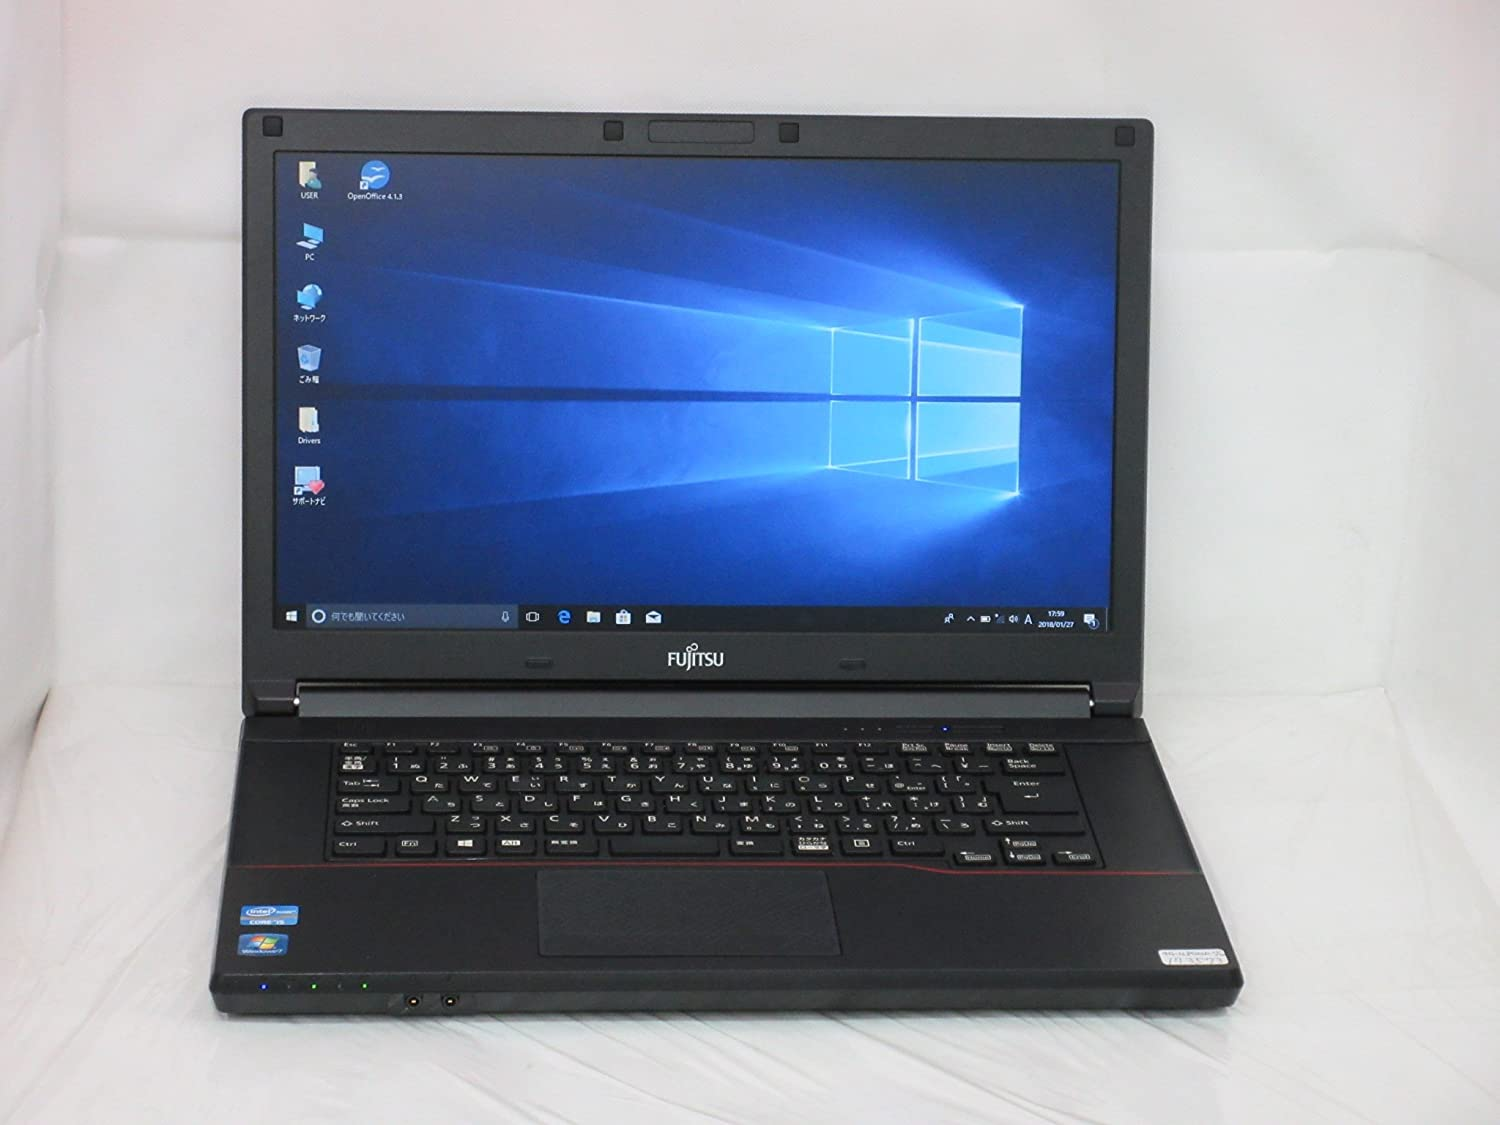 【中古】 富士通 LIFEBOOK A743/G ノートパソコン Core i5 3340M 2.7GHz メモリ4GB 128GBSSD DVD-ROM Windows10 Professional 64bit FMVA02008   B079FP2CZ7